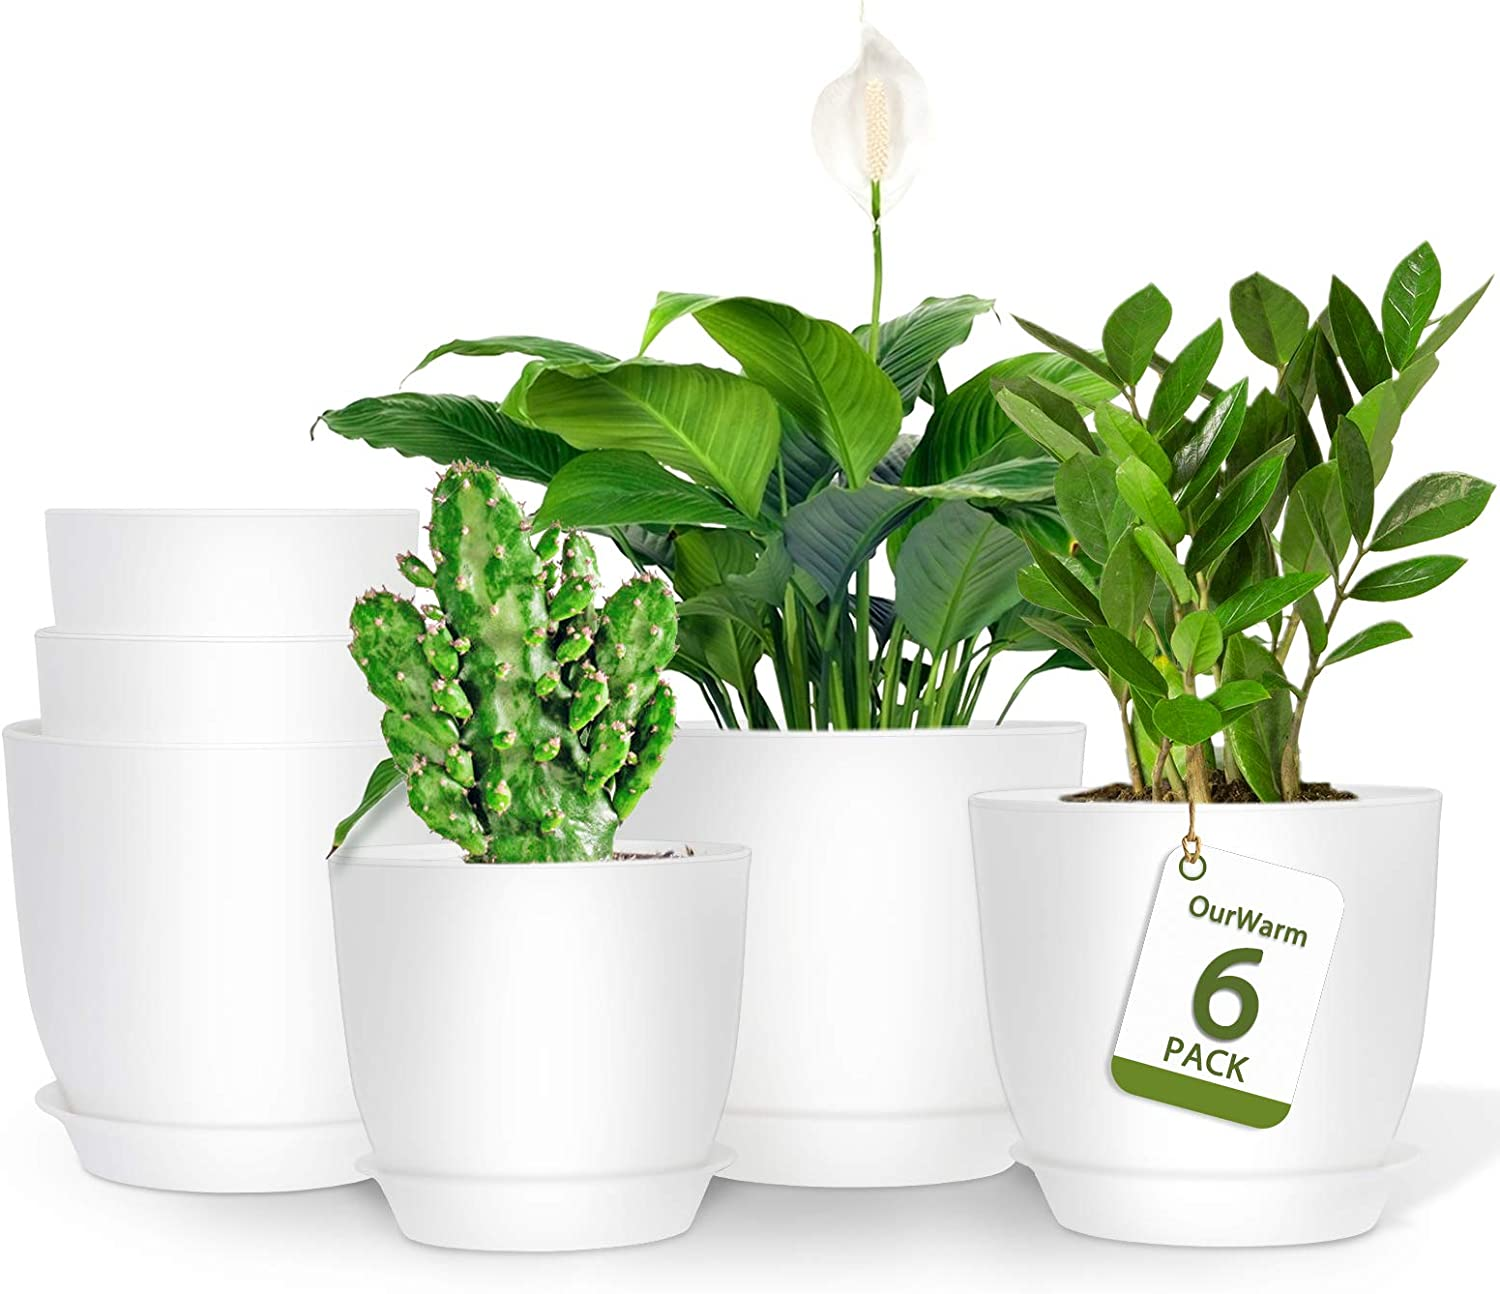 OurWarm 6 Pack Regular store Plastic Planter with 6.2 5.5 Inch Wh Saucers 4.9 Max 47% OFF